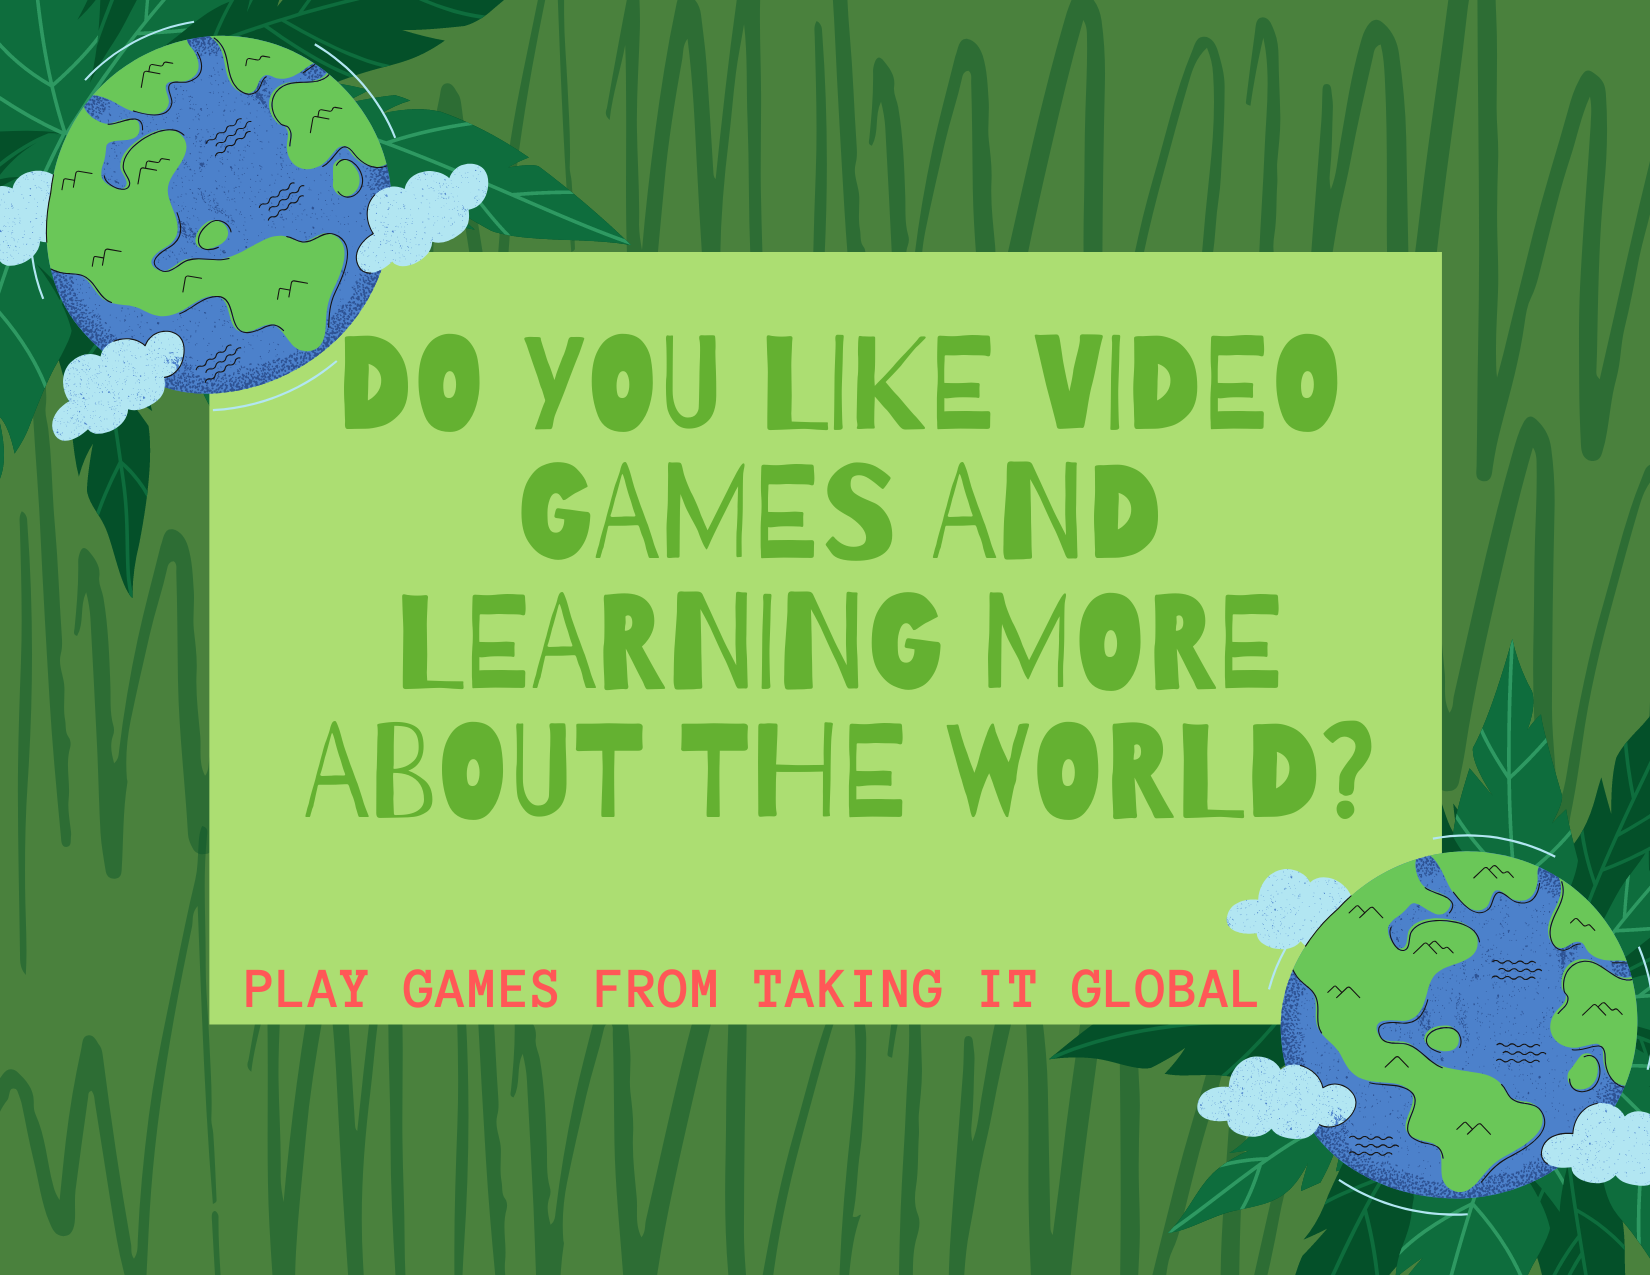 Do you like video games and learning more about the world_